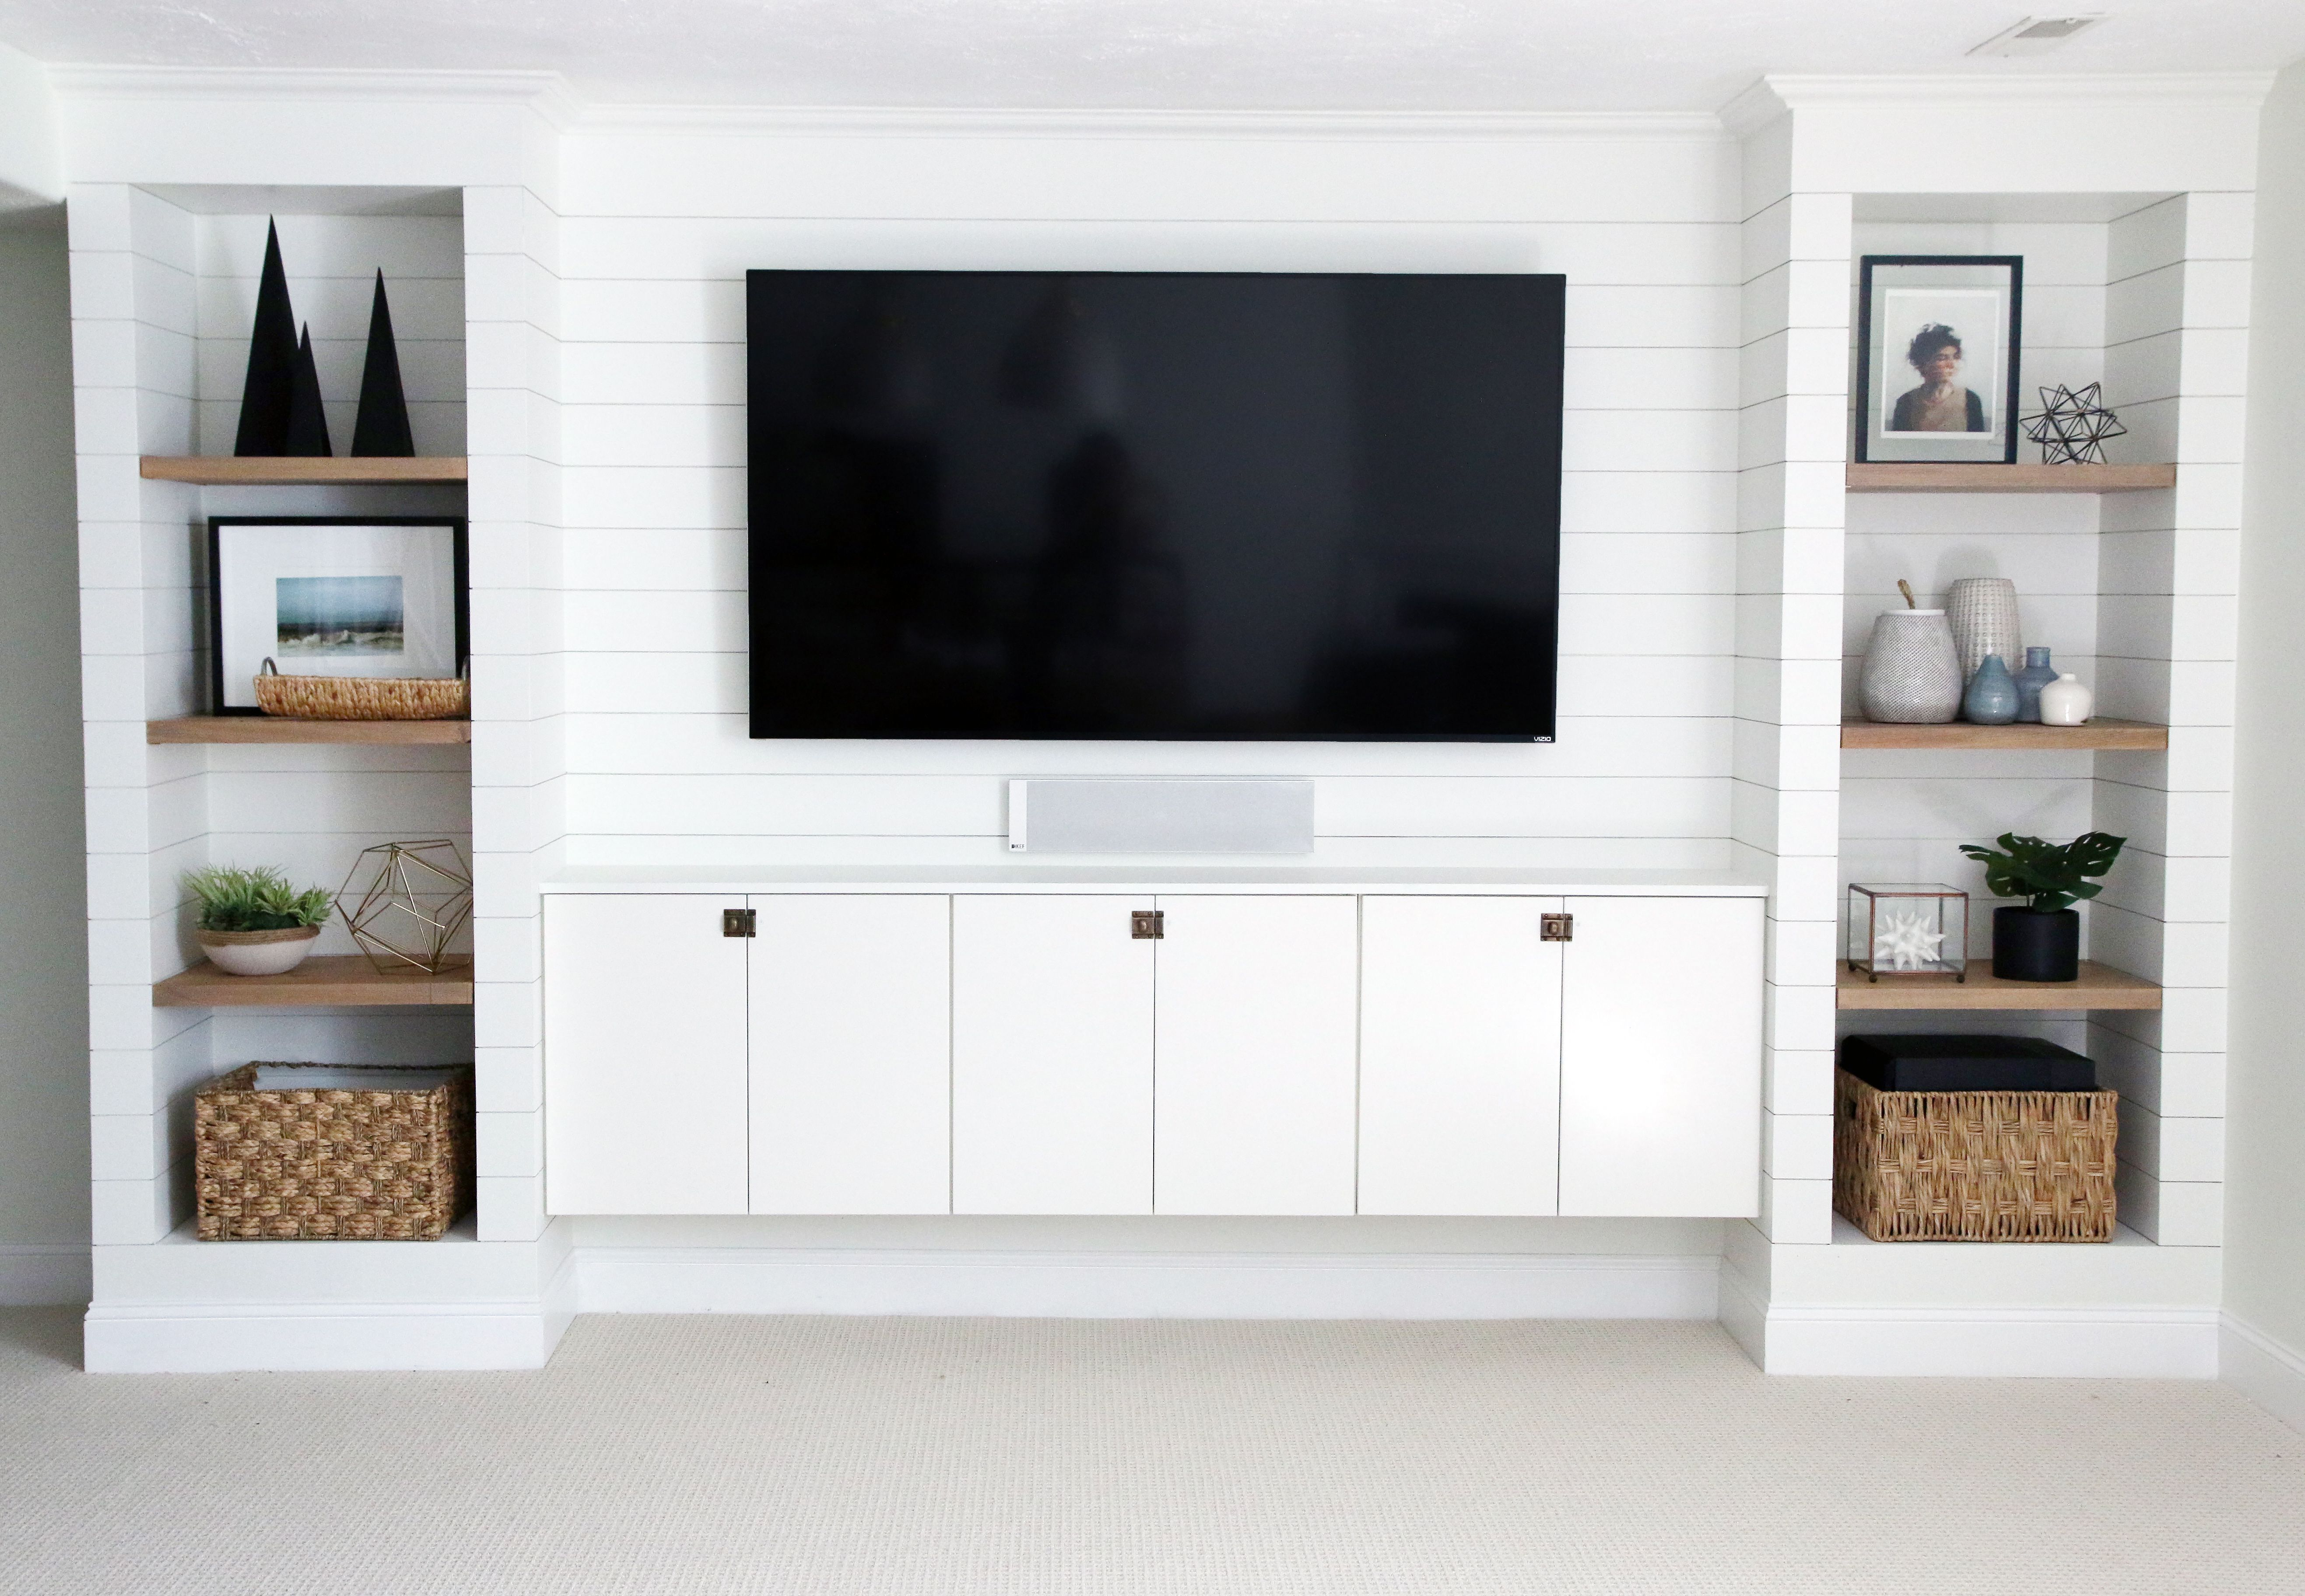 No Furniture Living Room Thoughts On Picking The Right Tv For Your Home And Family